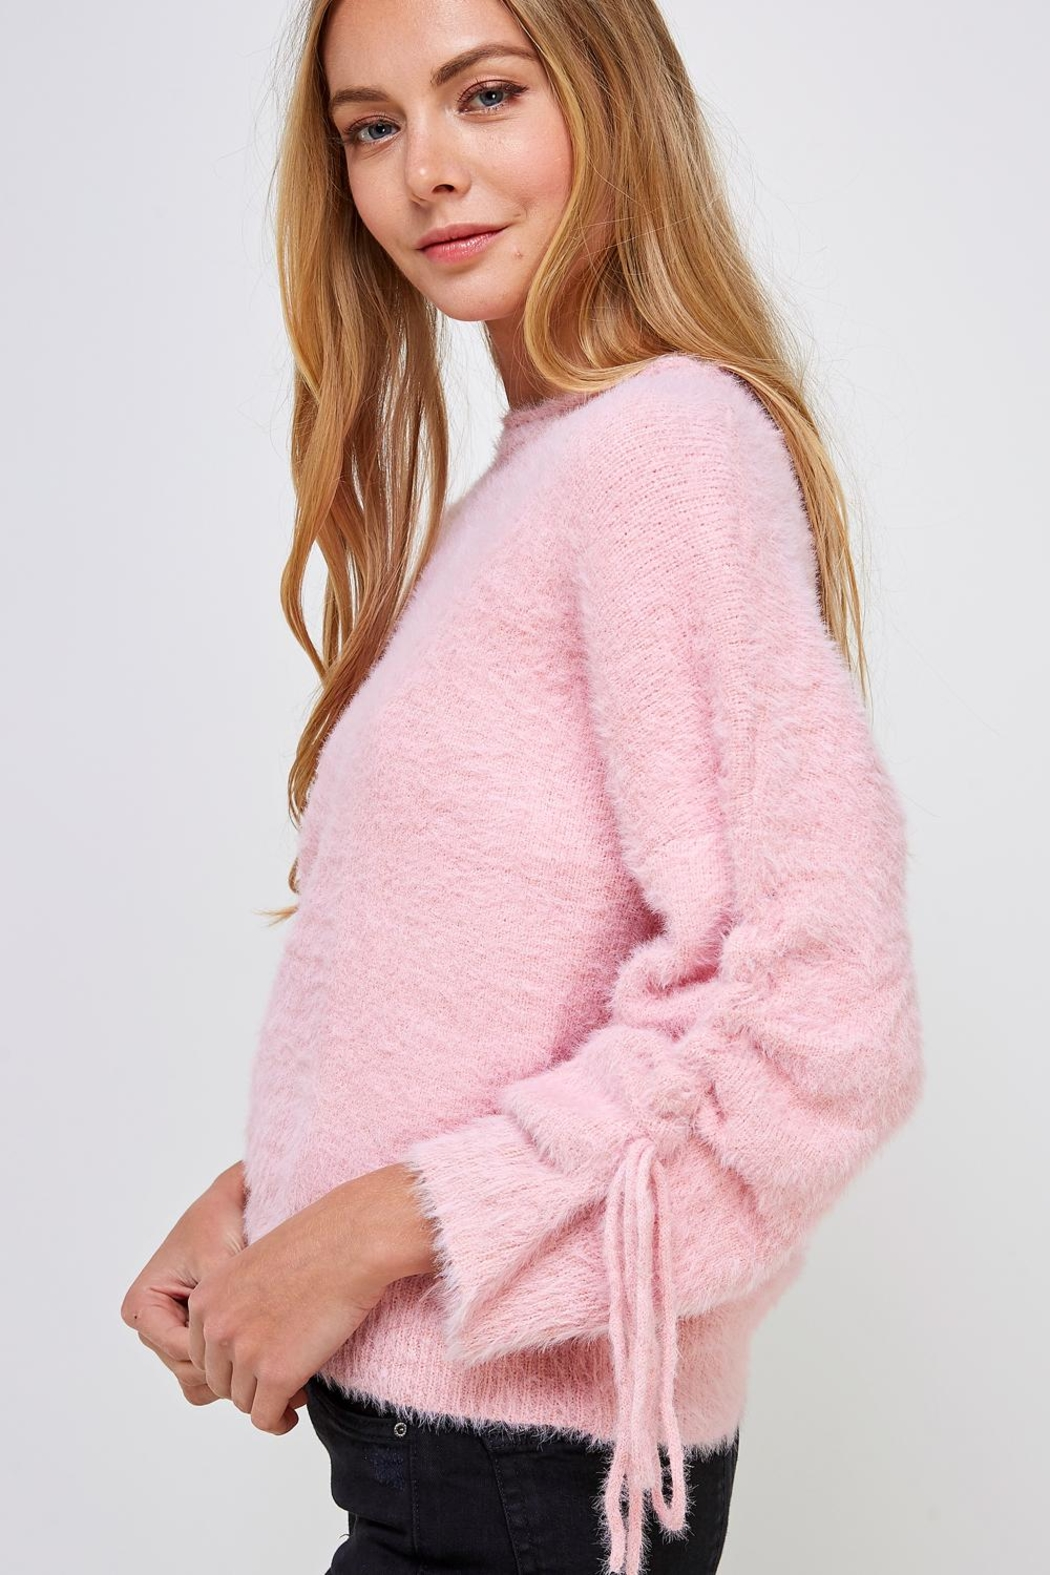 Cotton Candy LA Fuzzy Tie Sweater - Side Cropped Image